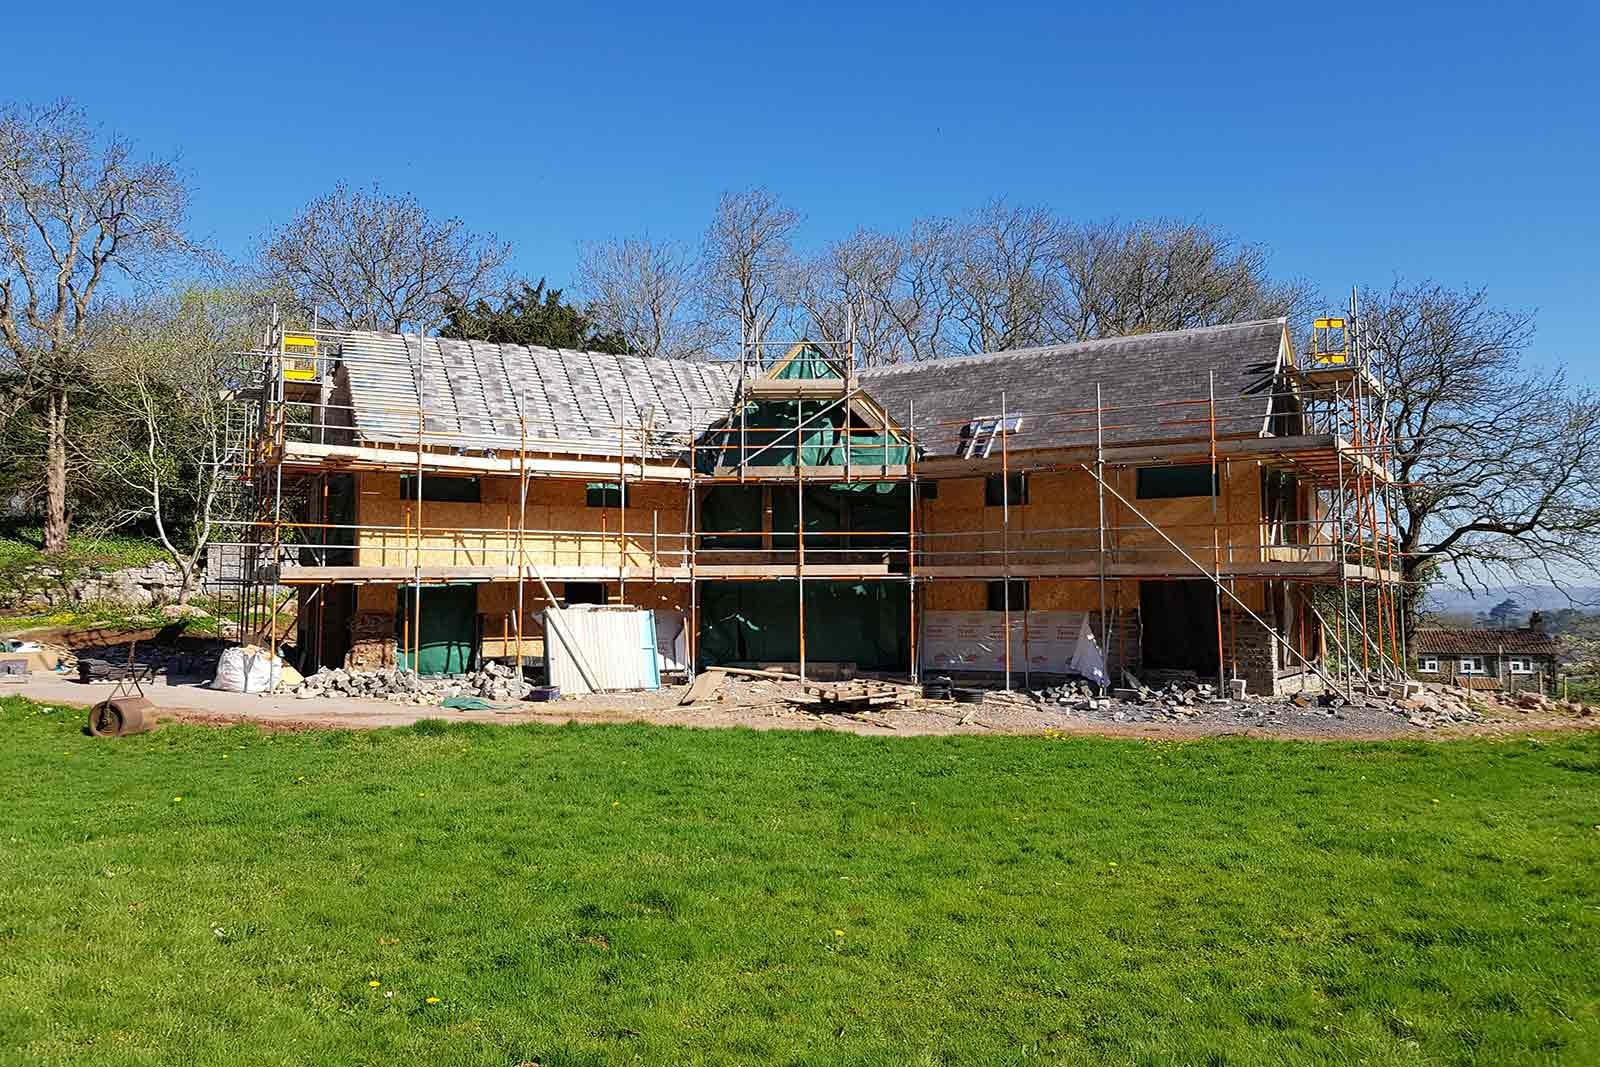 The exterior of a bespoke turnkey home showing the oak frame